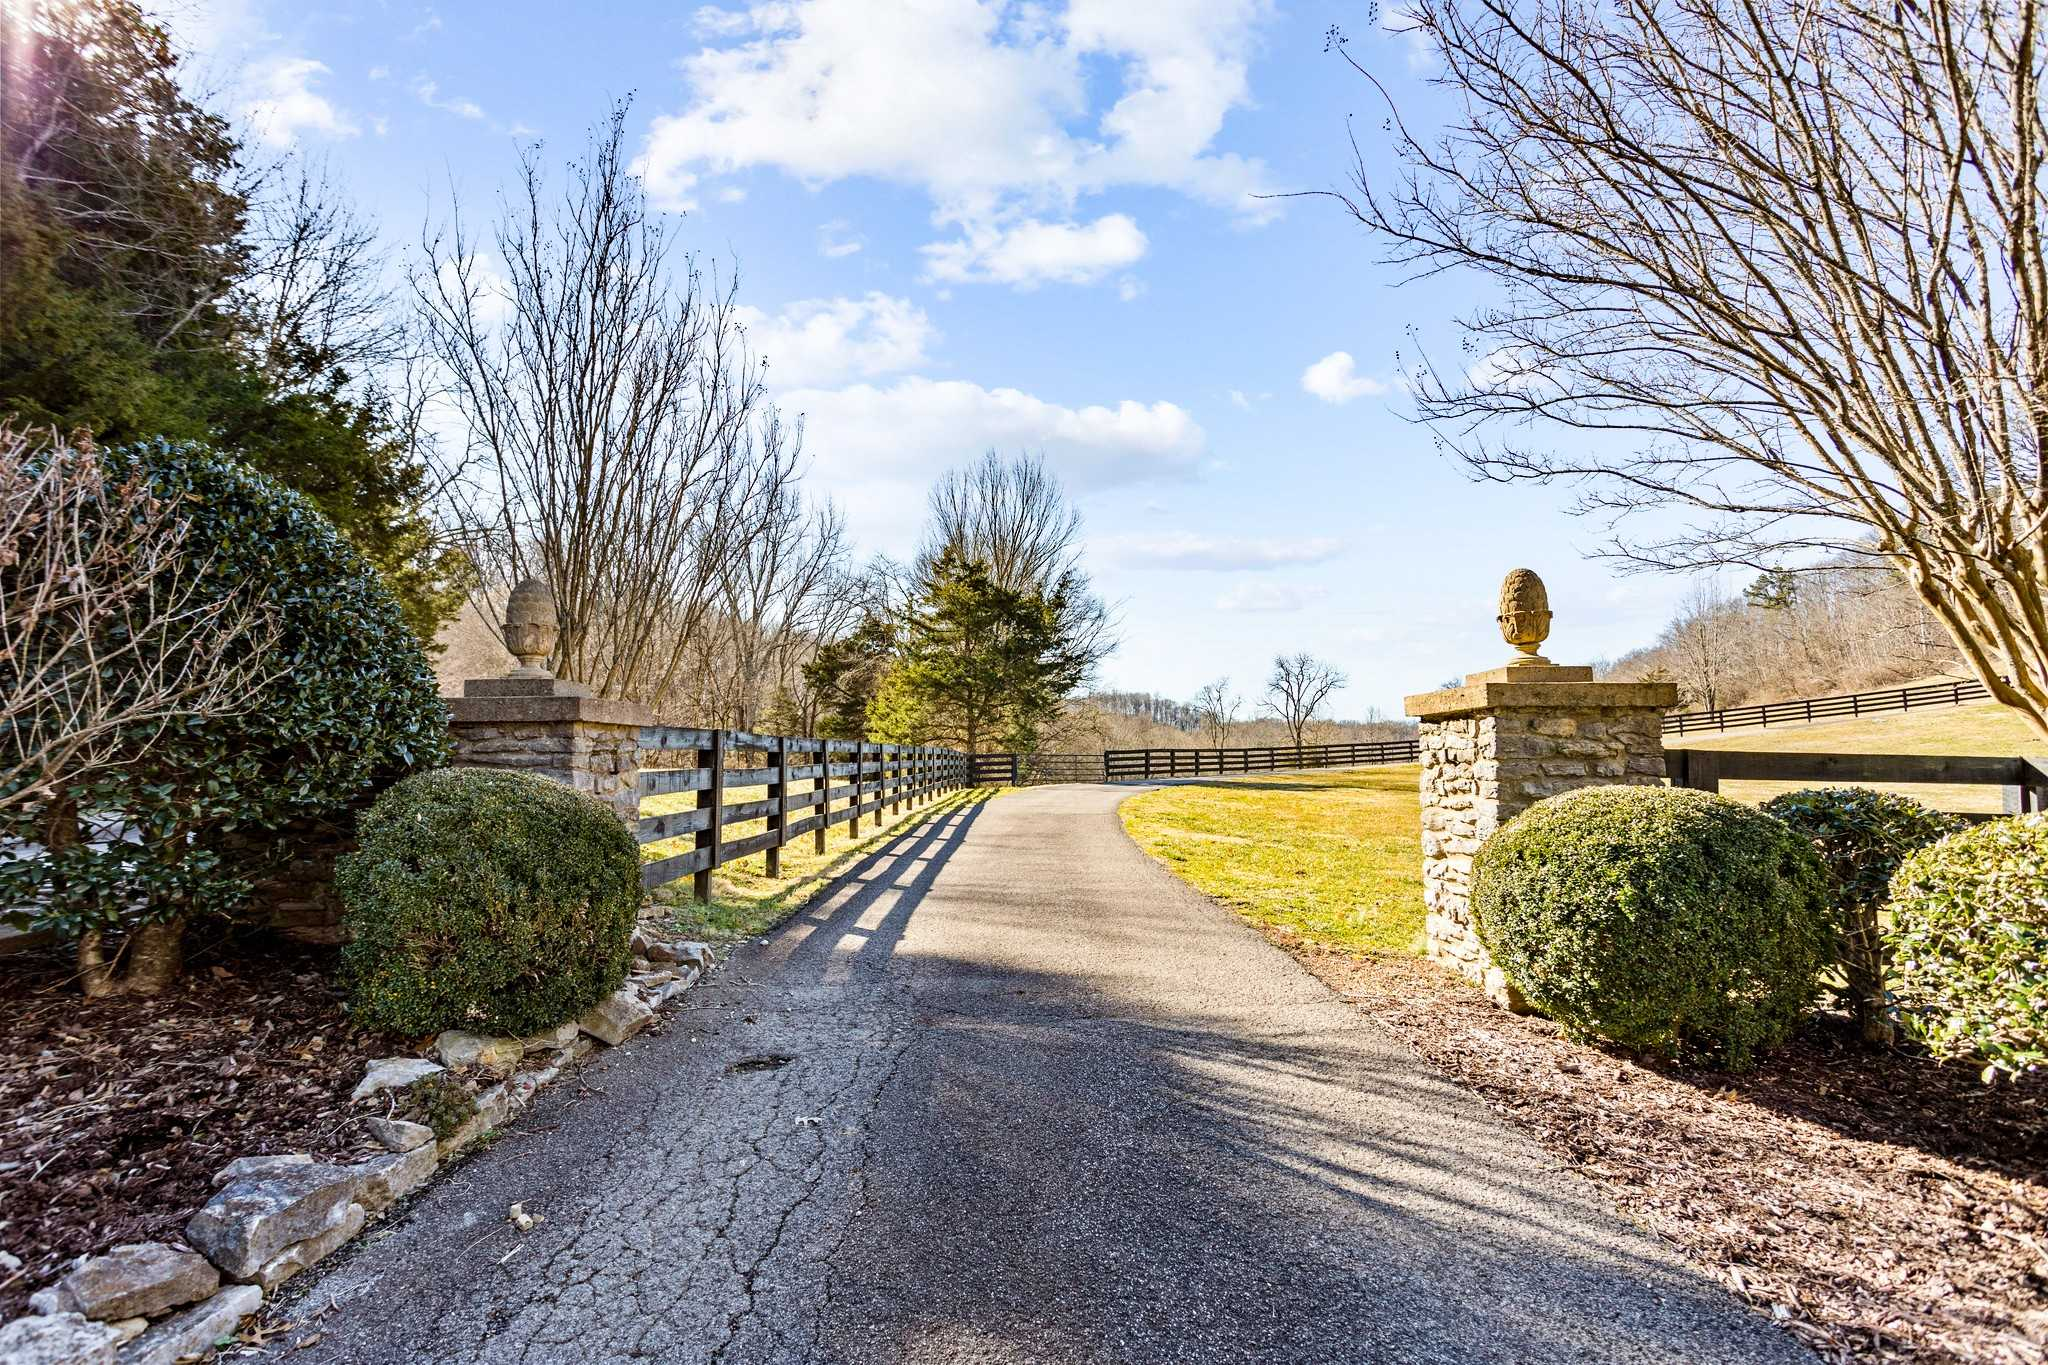 $2,650,000 - 4Br/3Ba -  for Sale in 38 Private Acres, Franklin